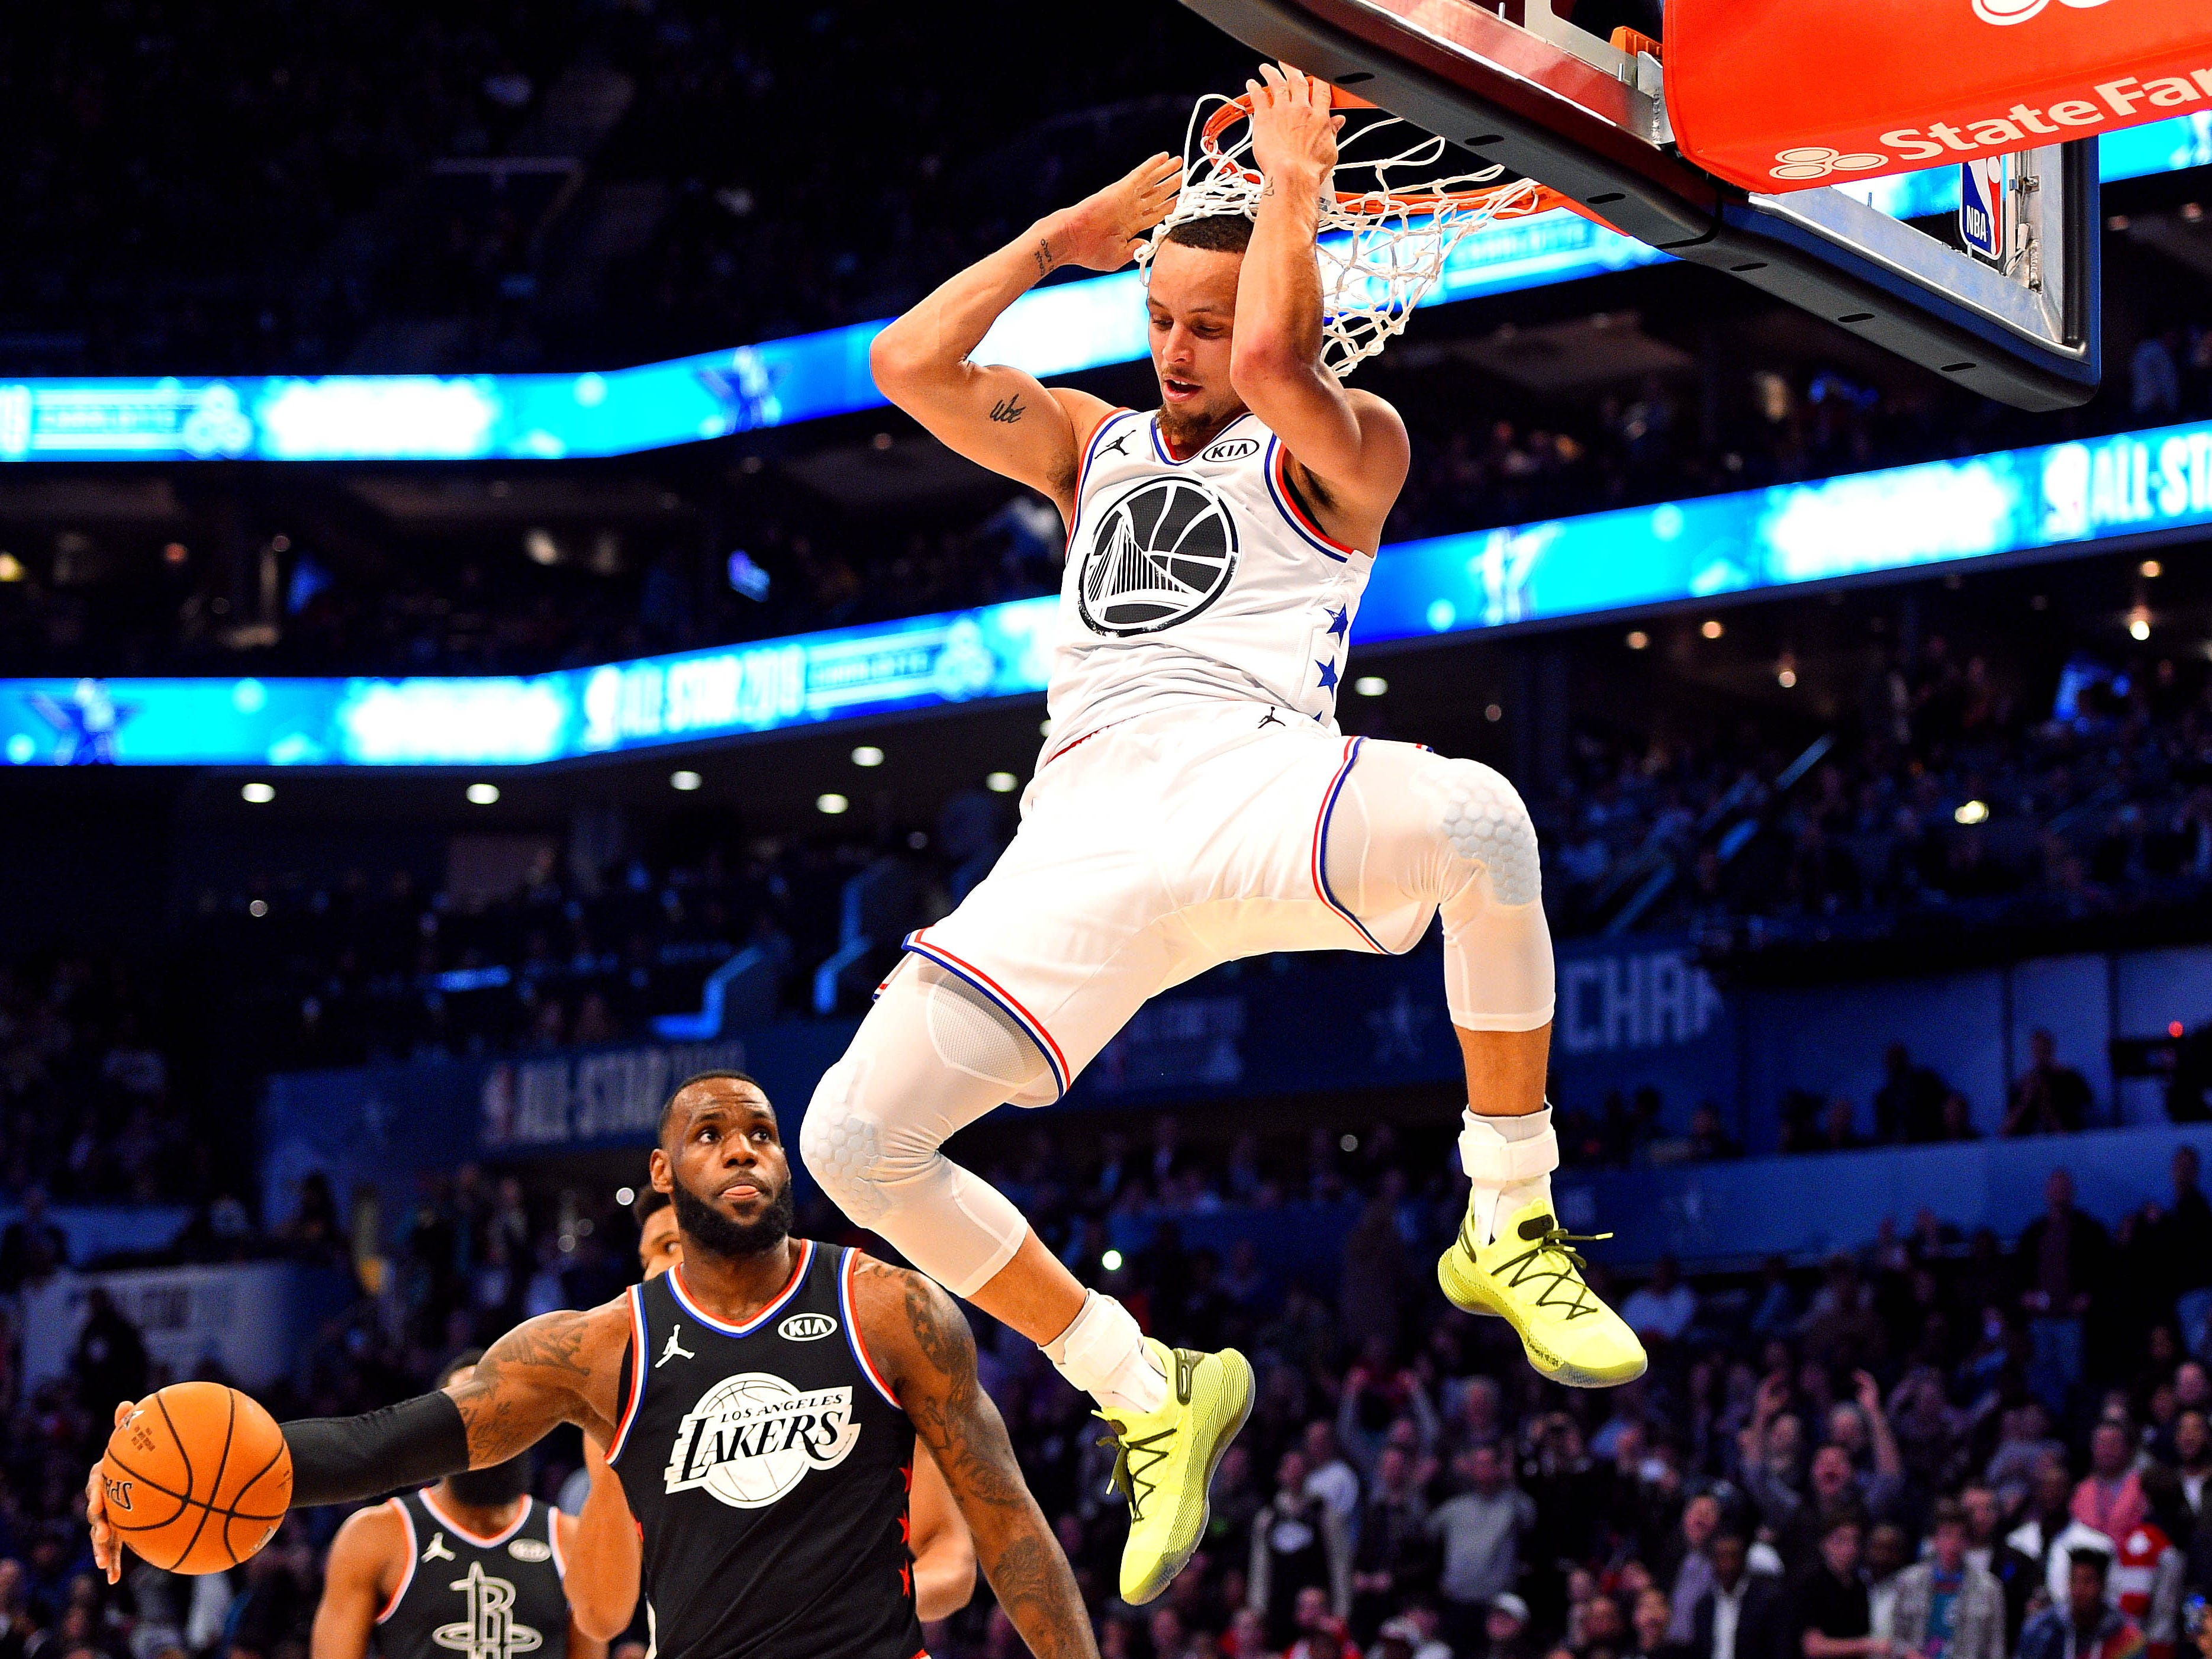 Steph Curry hangs on the rim after throwing down a dunk in the All-Star Game.